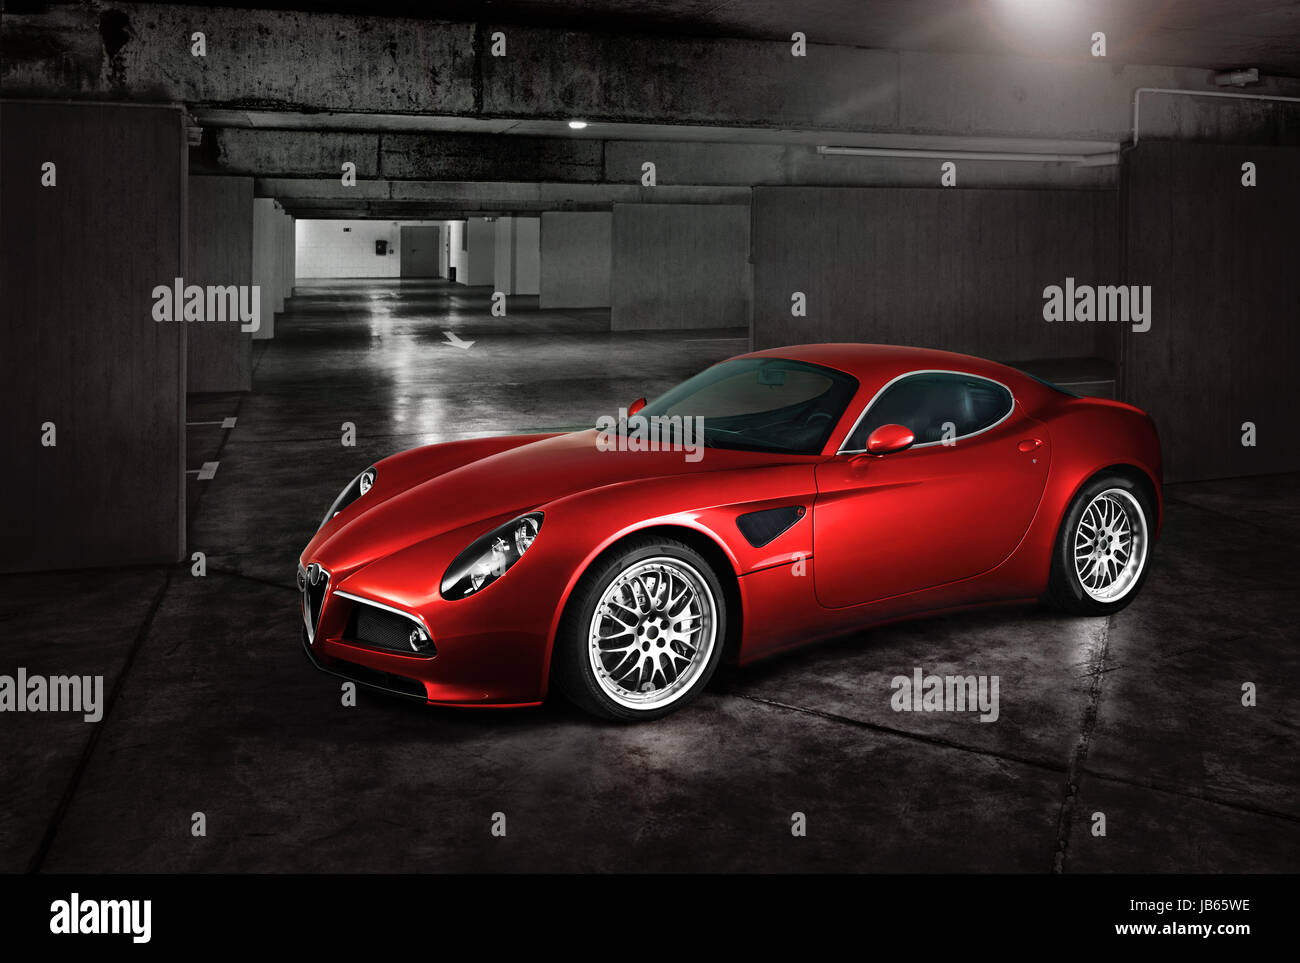 Italian sports red car in the underground parking - Stock Image